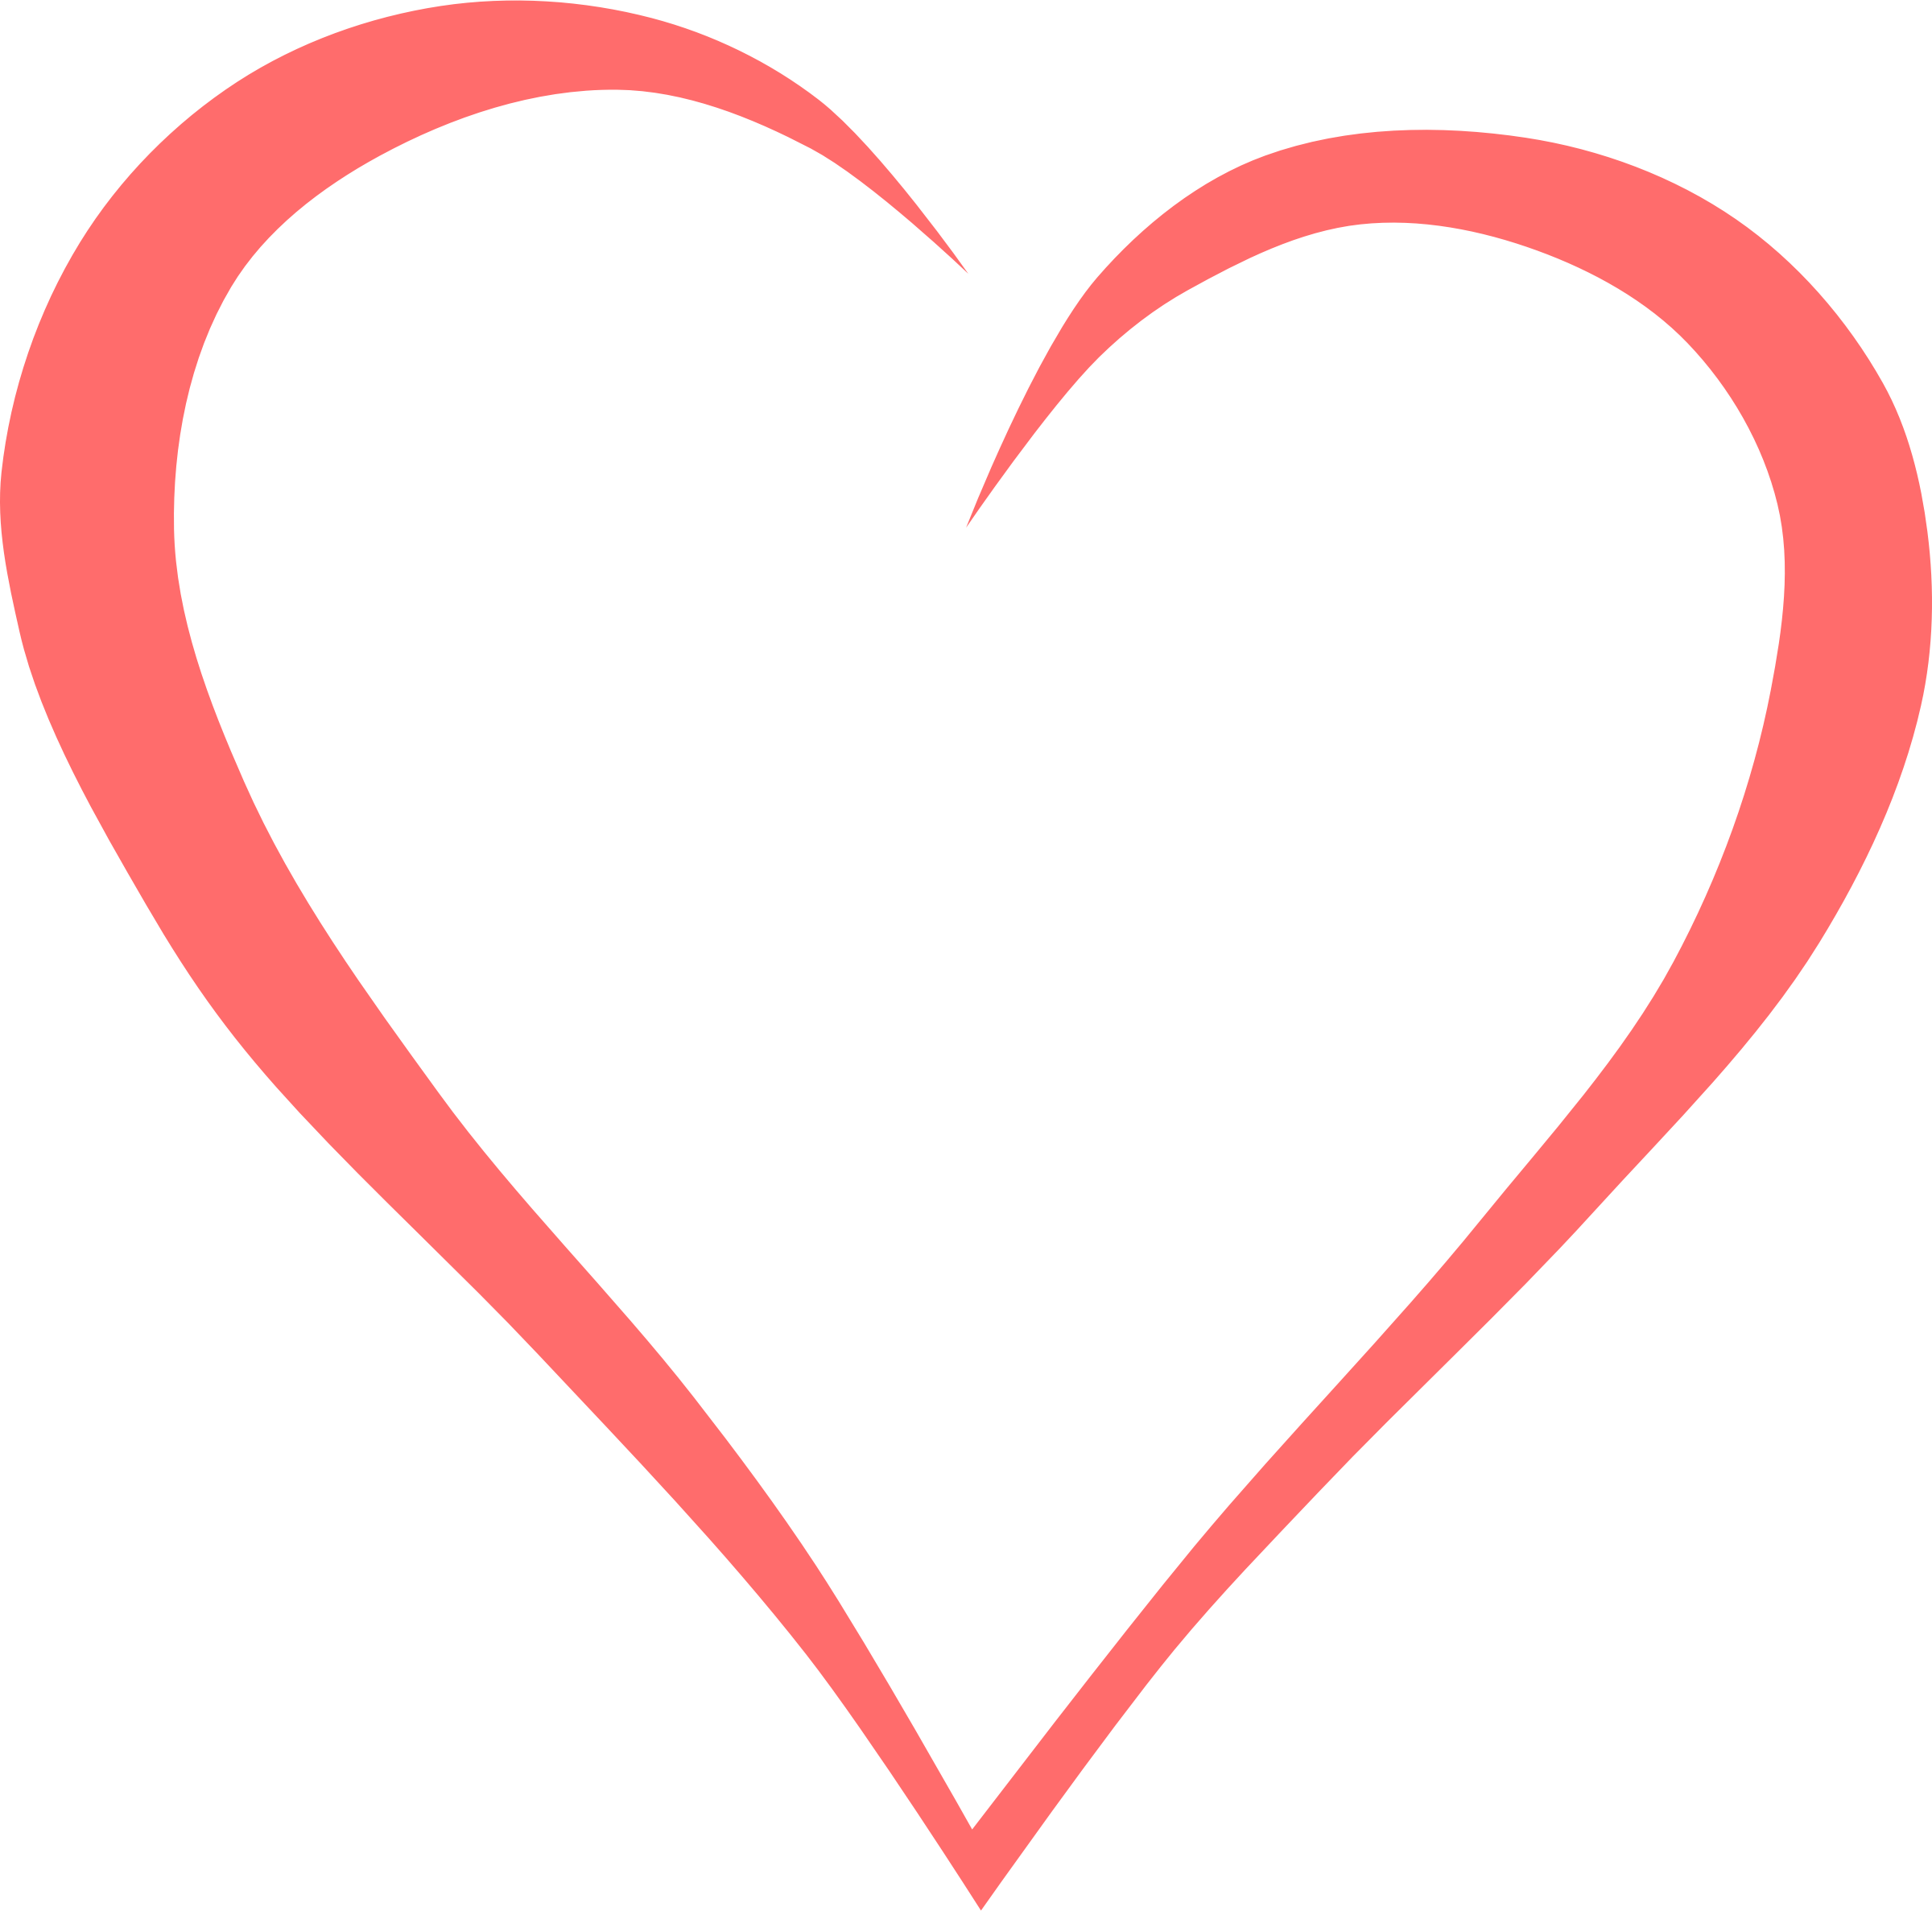 Abstract heart png. Clipart at getdrawings com